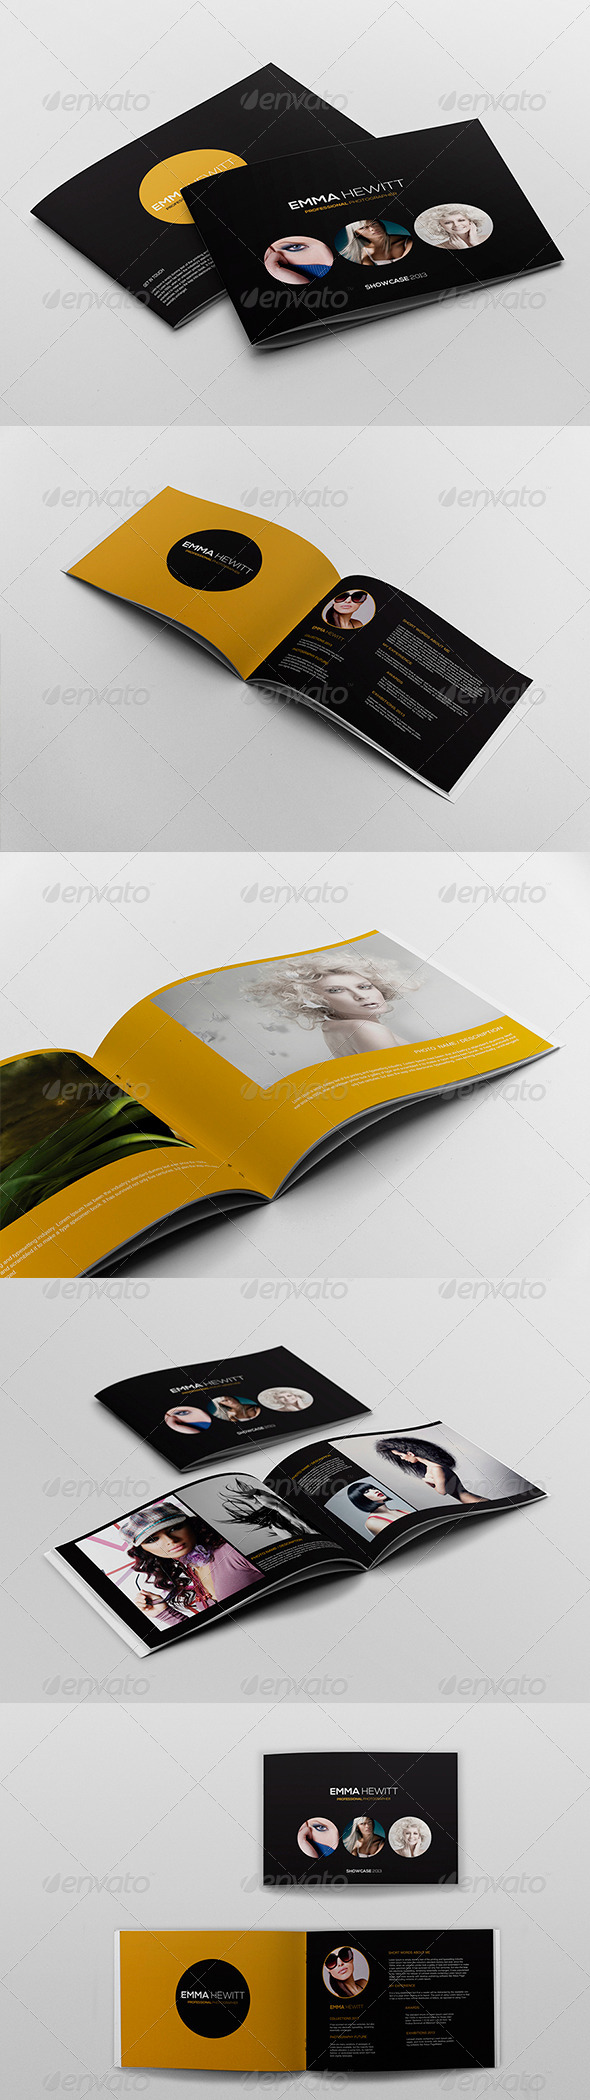 GraphicRiver Portfolio Brochure 002 6109600